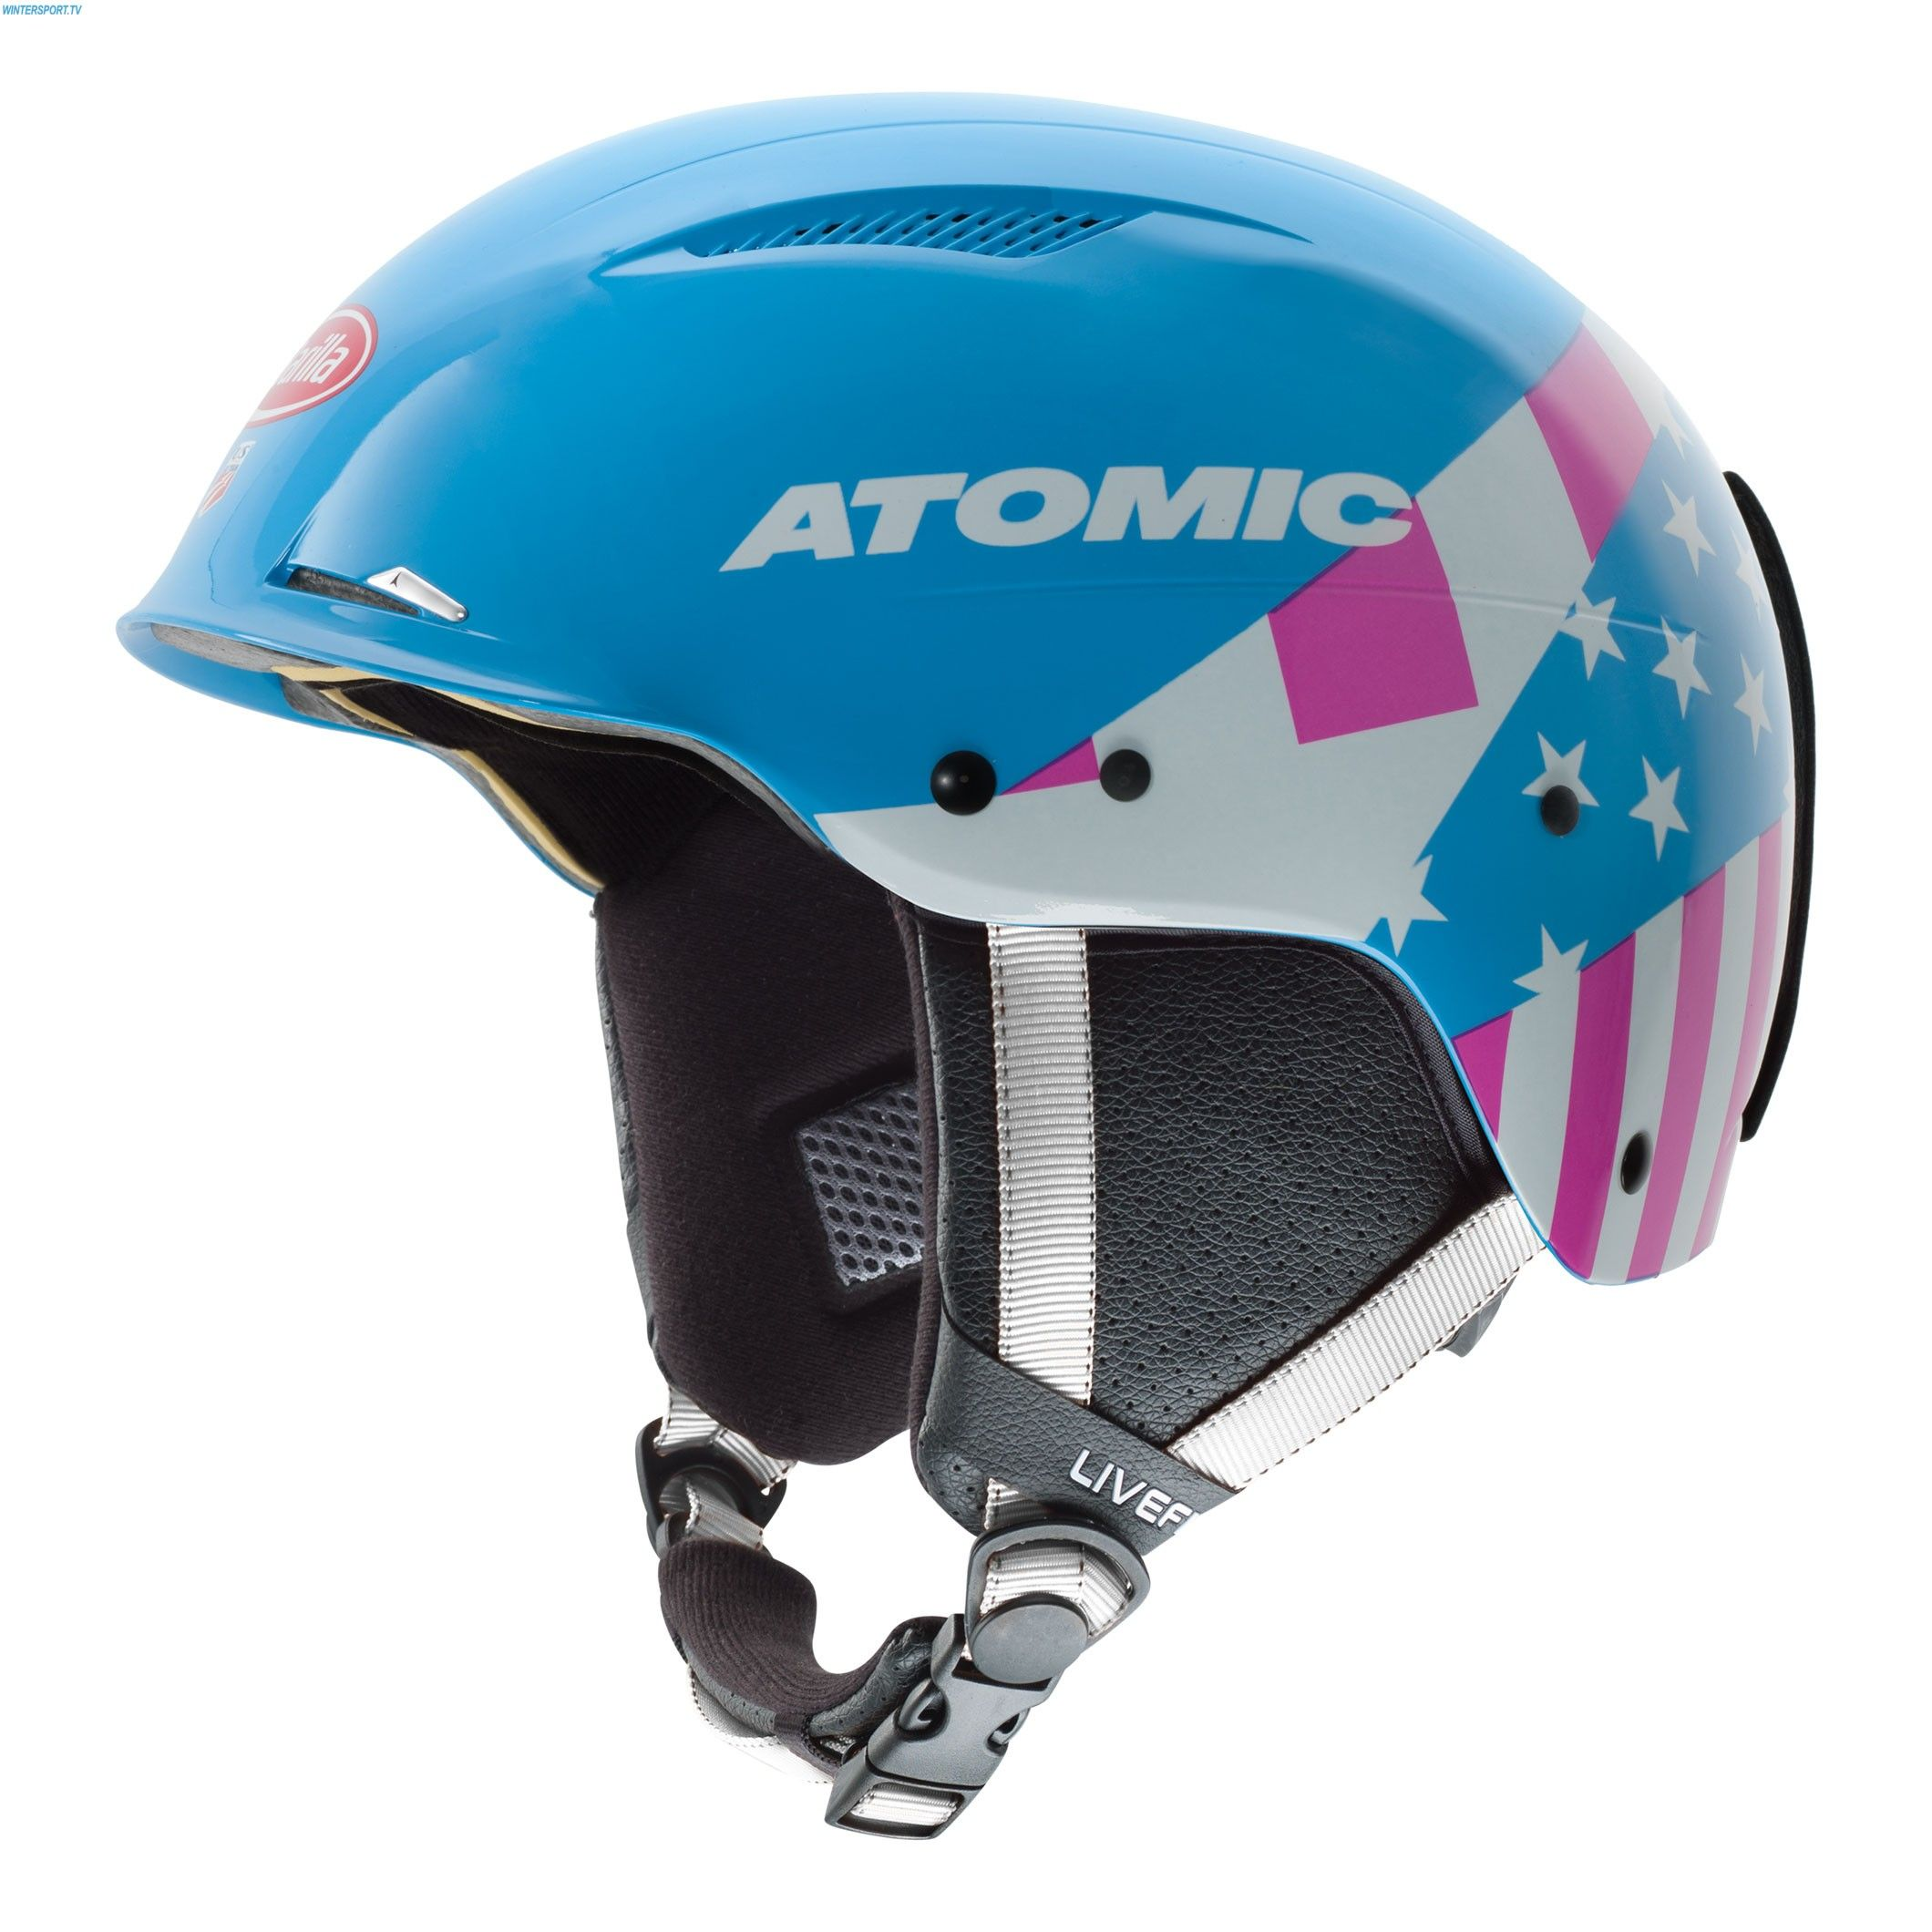 Atomic Redster LF Slalom Helmet with Chin Guard Mikaela